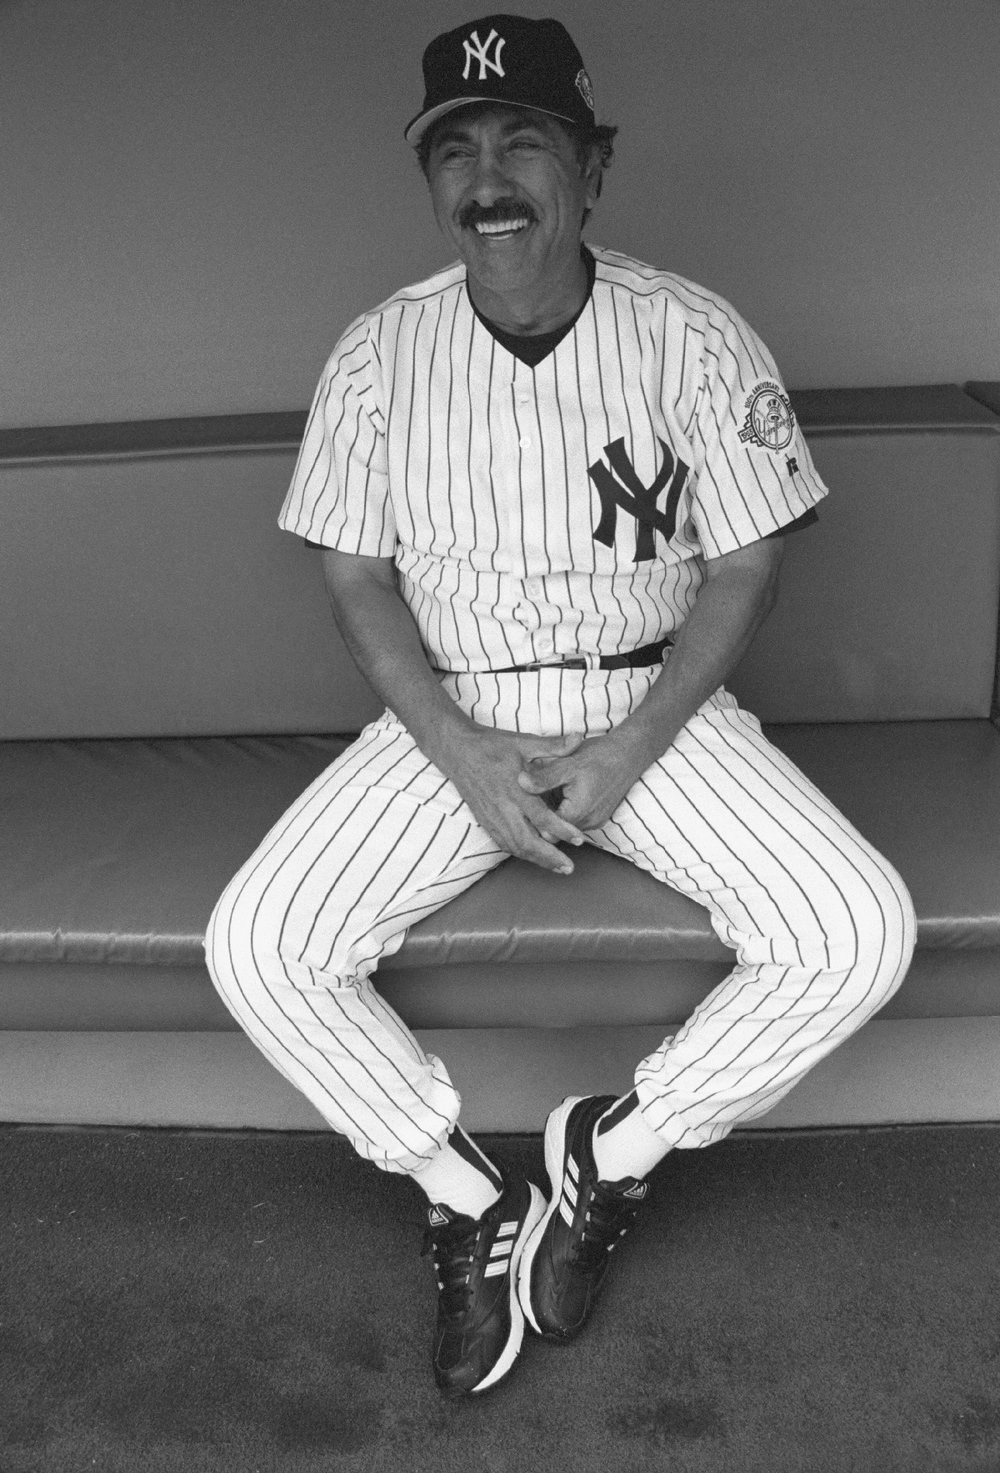 Ed Figueroa played with The Yankees